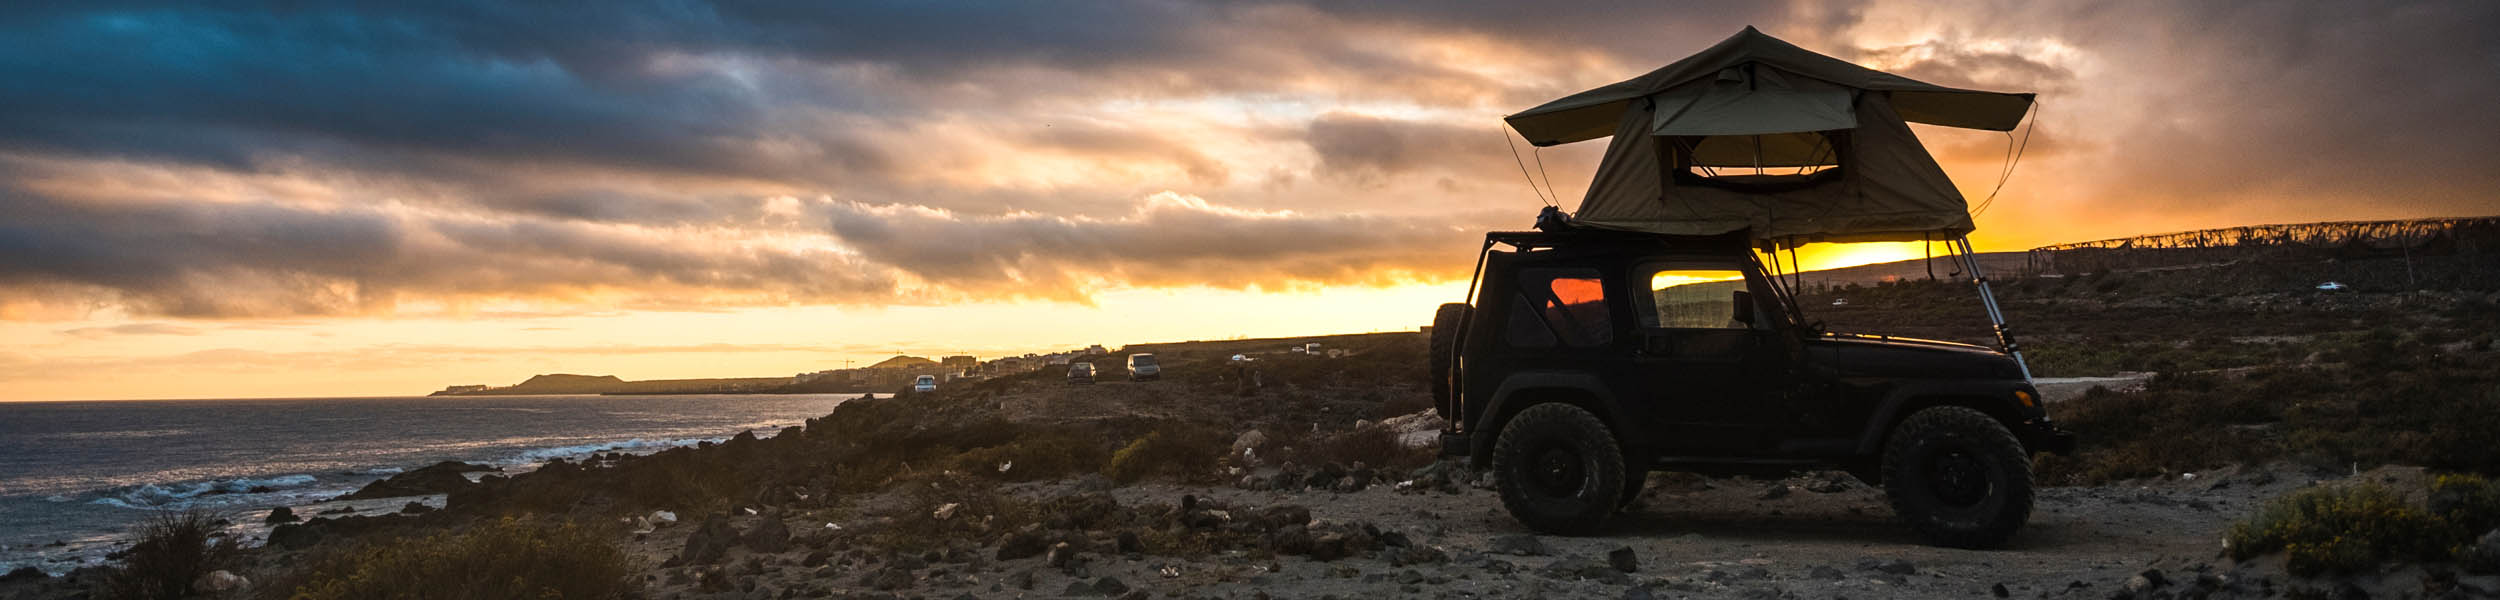 Roof Tents 4x4 Accessories Amp Expedition Vehicle Gear